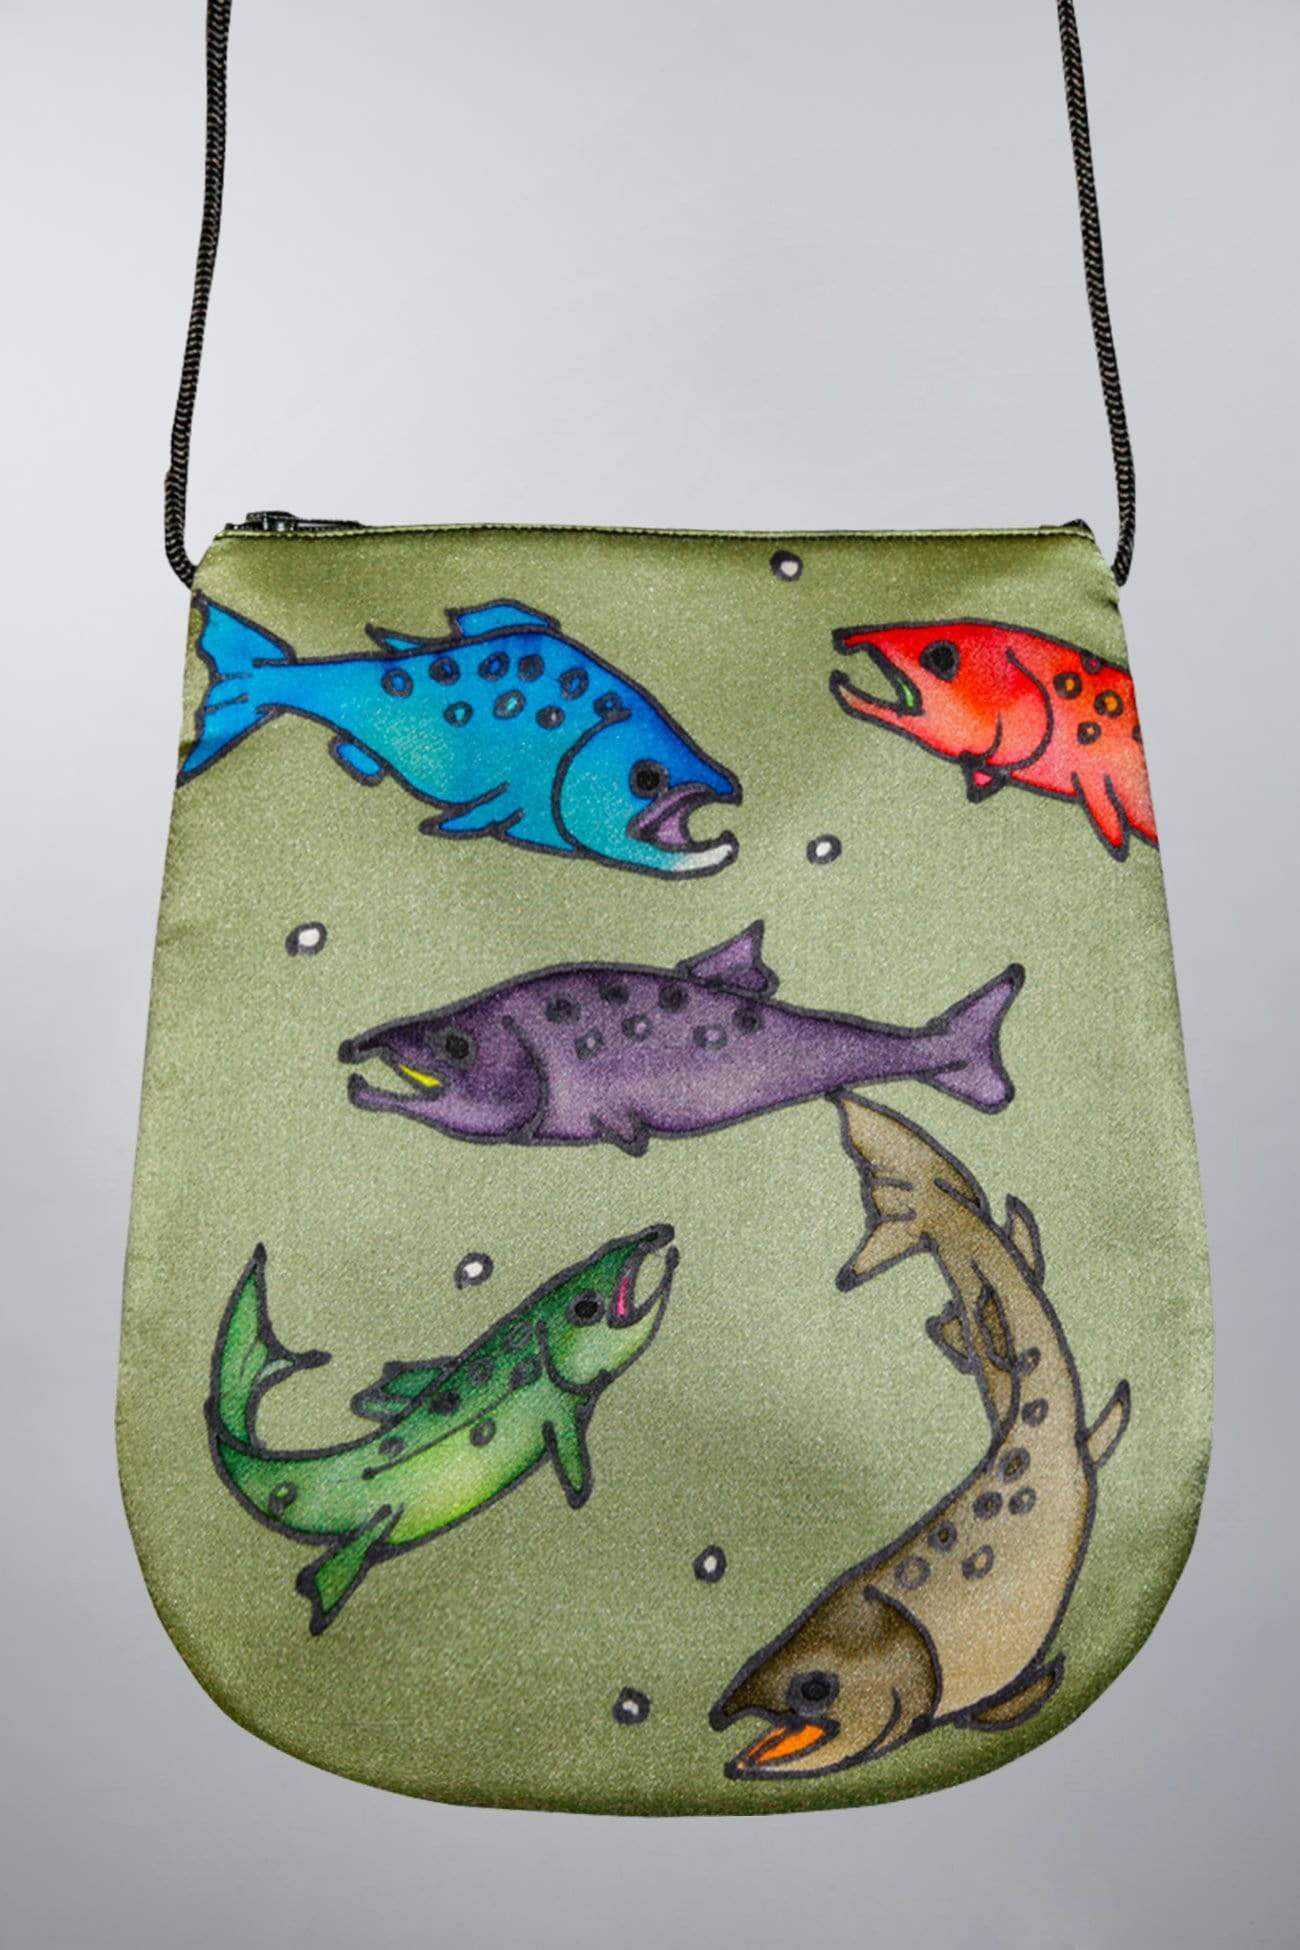 Invisible World Perfume Bags Gray Green Hand Painted Silk Perfume Bag - Salmon